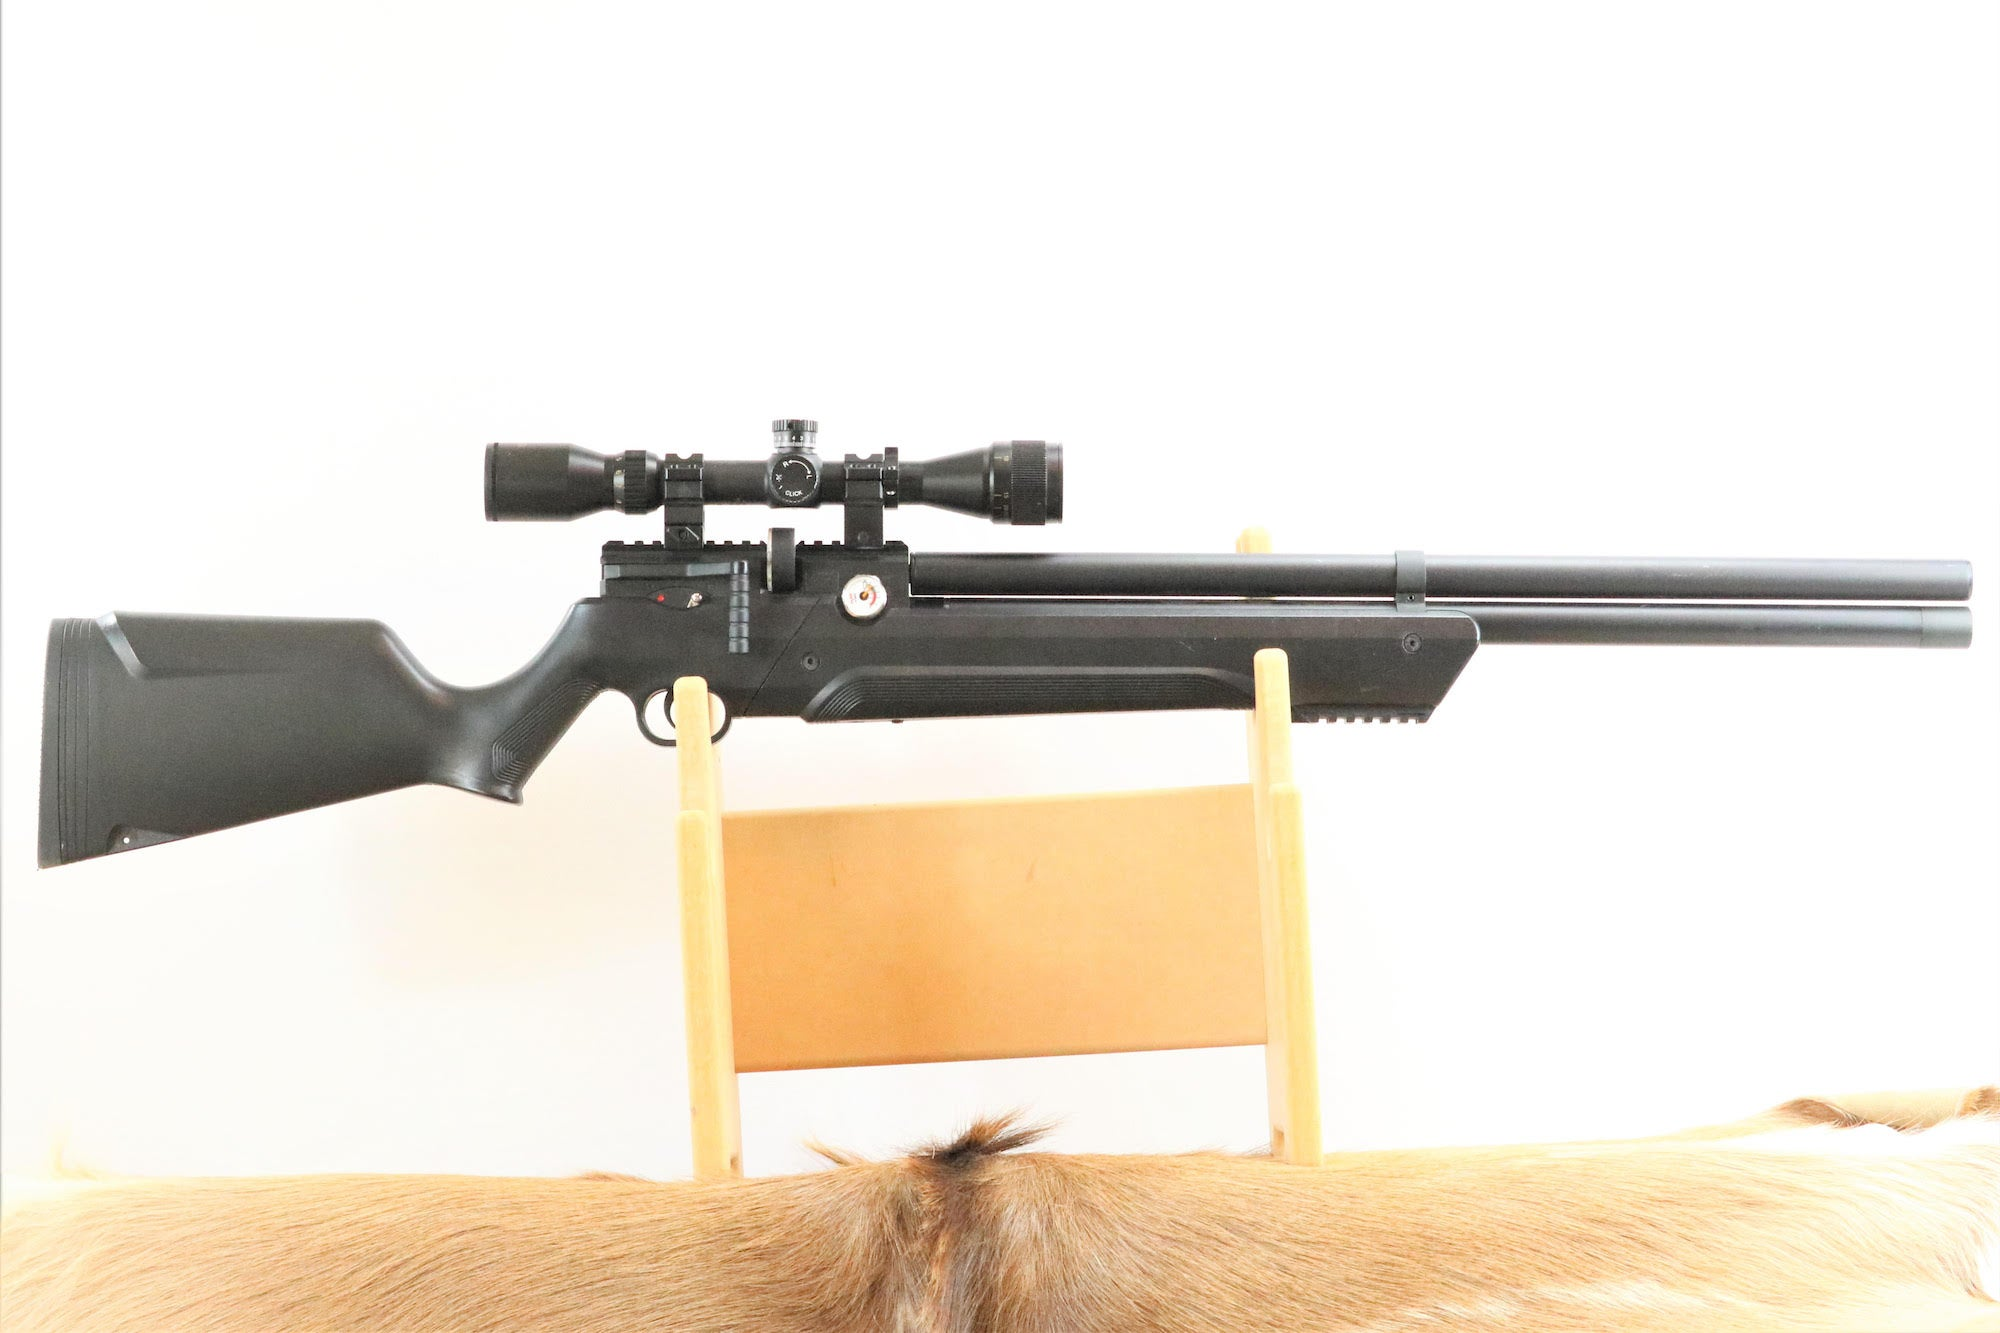 The Air Venturi is our pick for best air rifle.